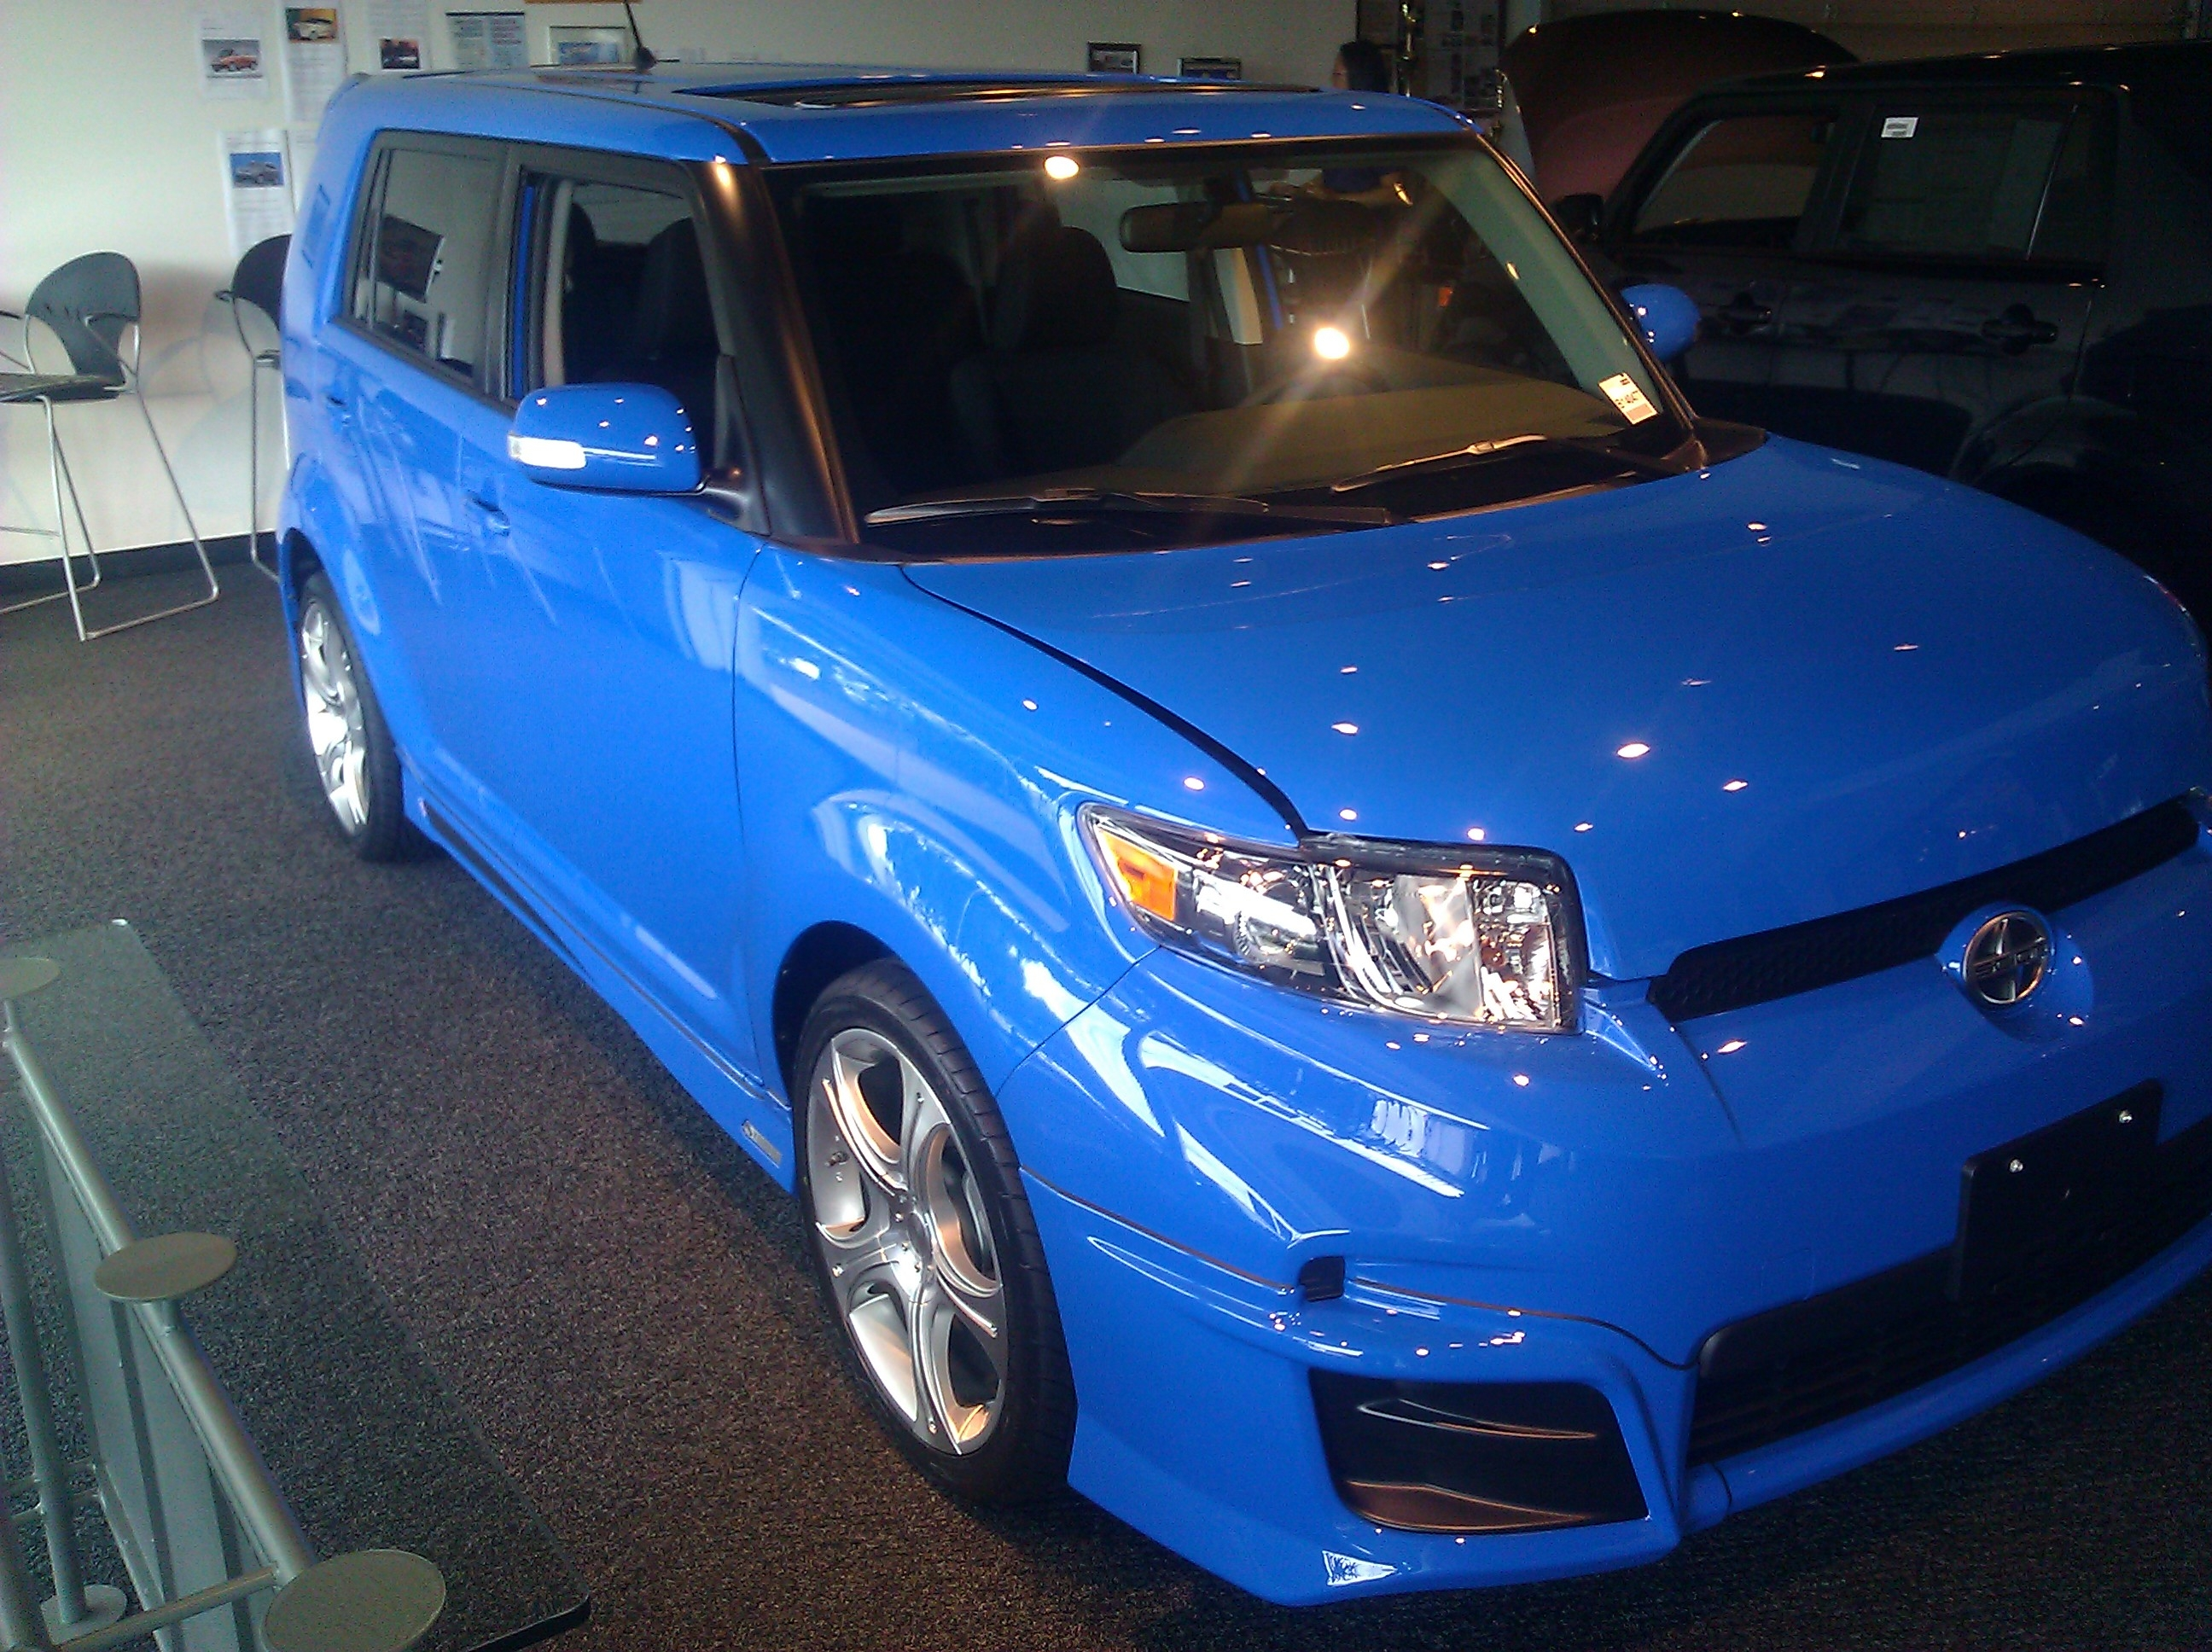 LELE_boy 2011 Scion xB 18895749